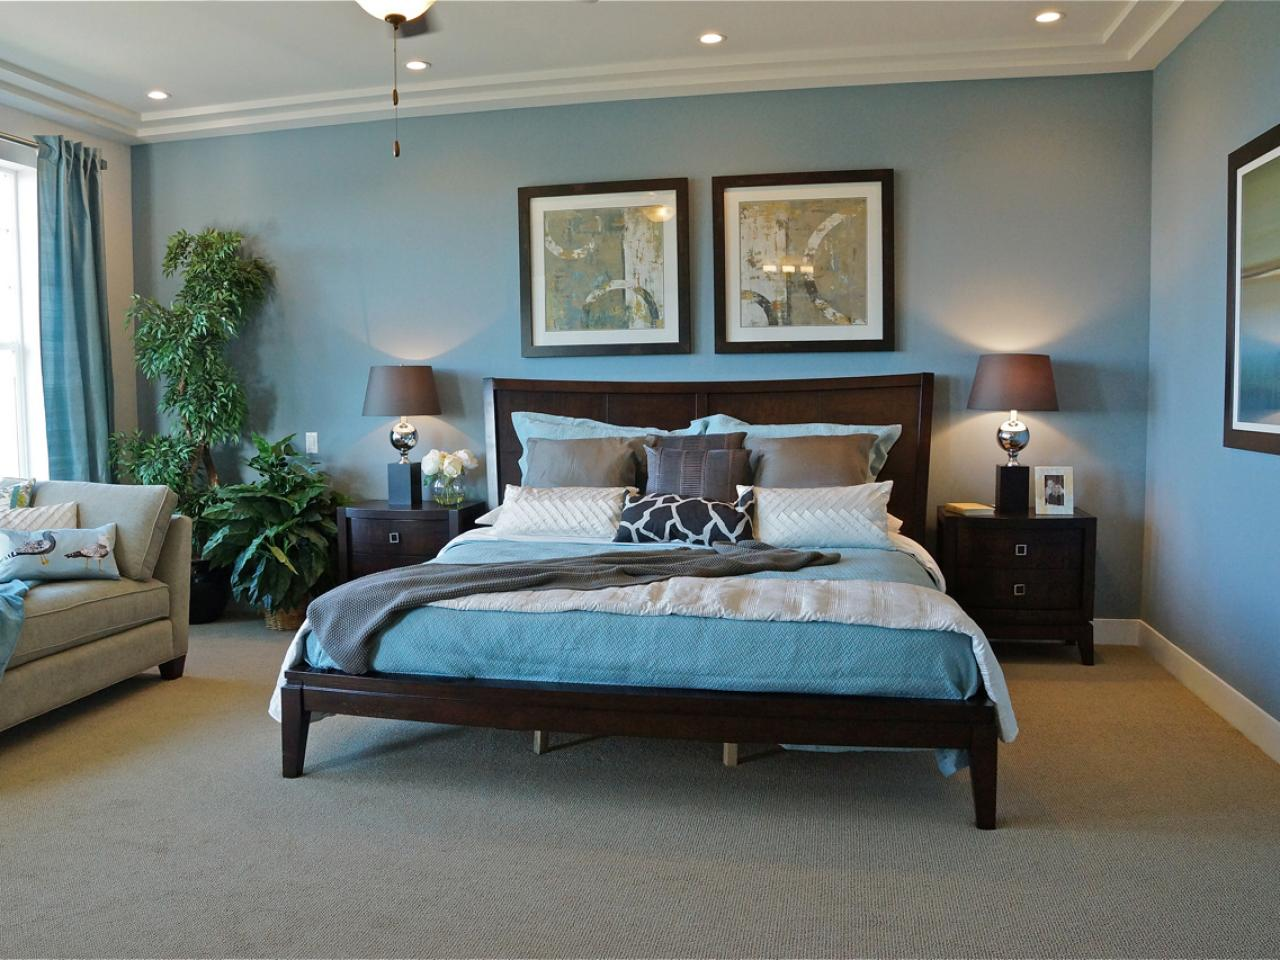 blue traditional bedrooms 21 decor ideas. Black Bedroom Furniture Sets. Home Design Ideas